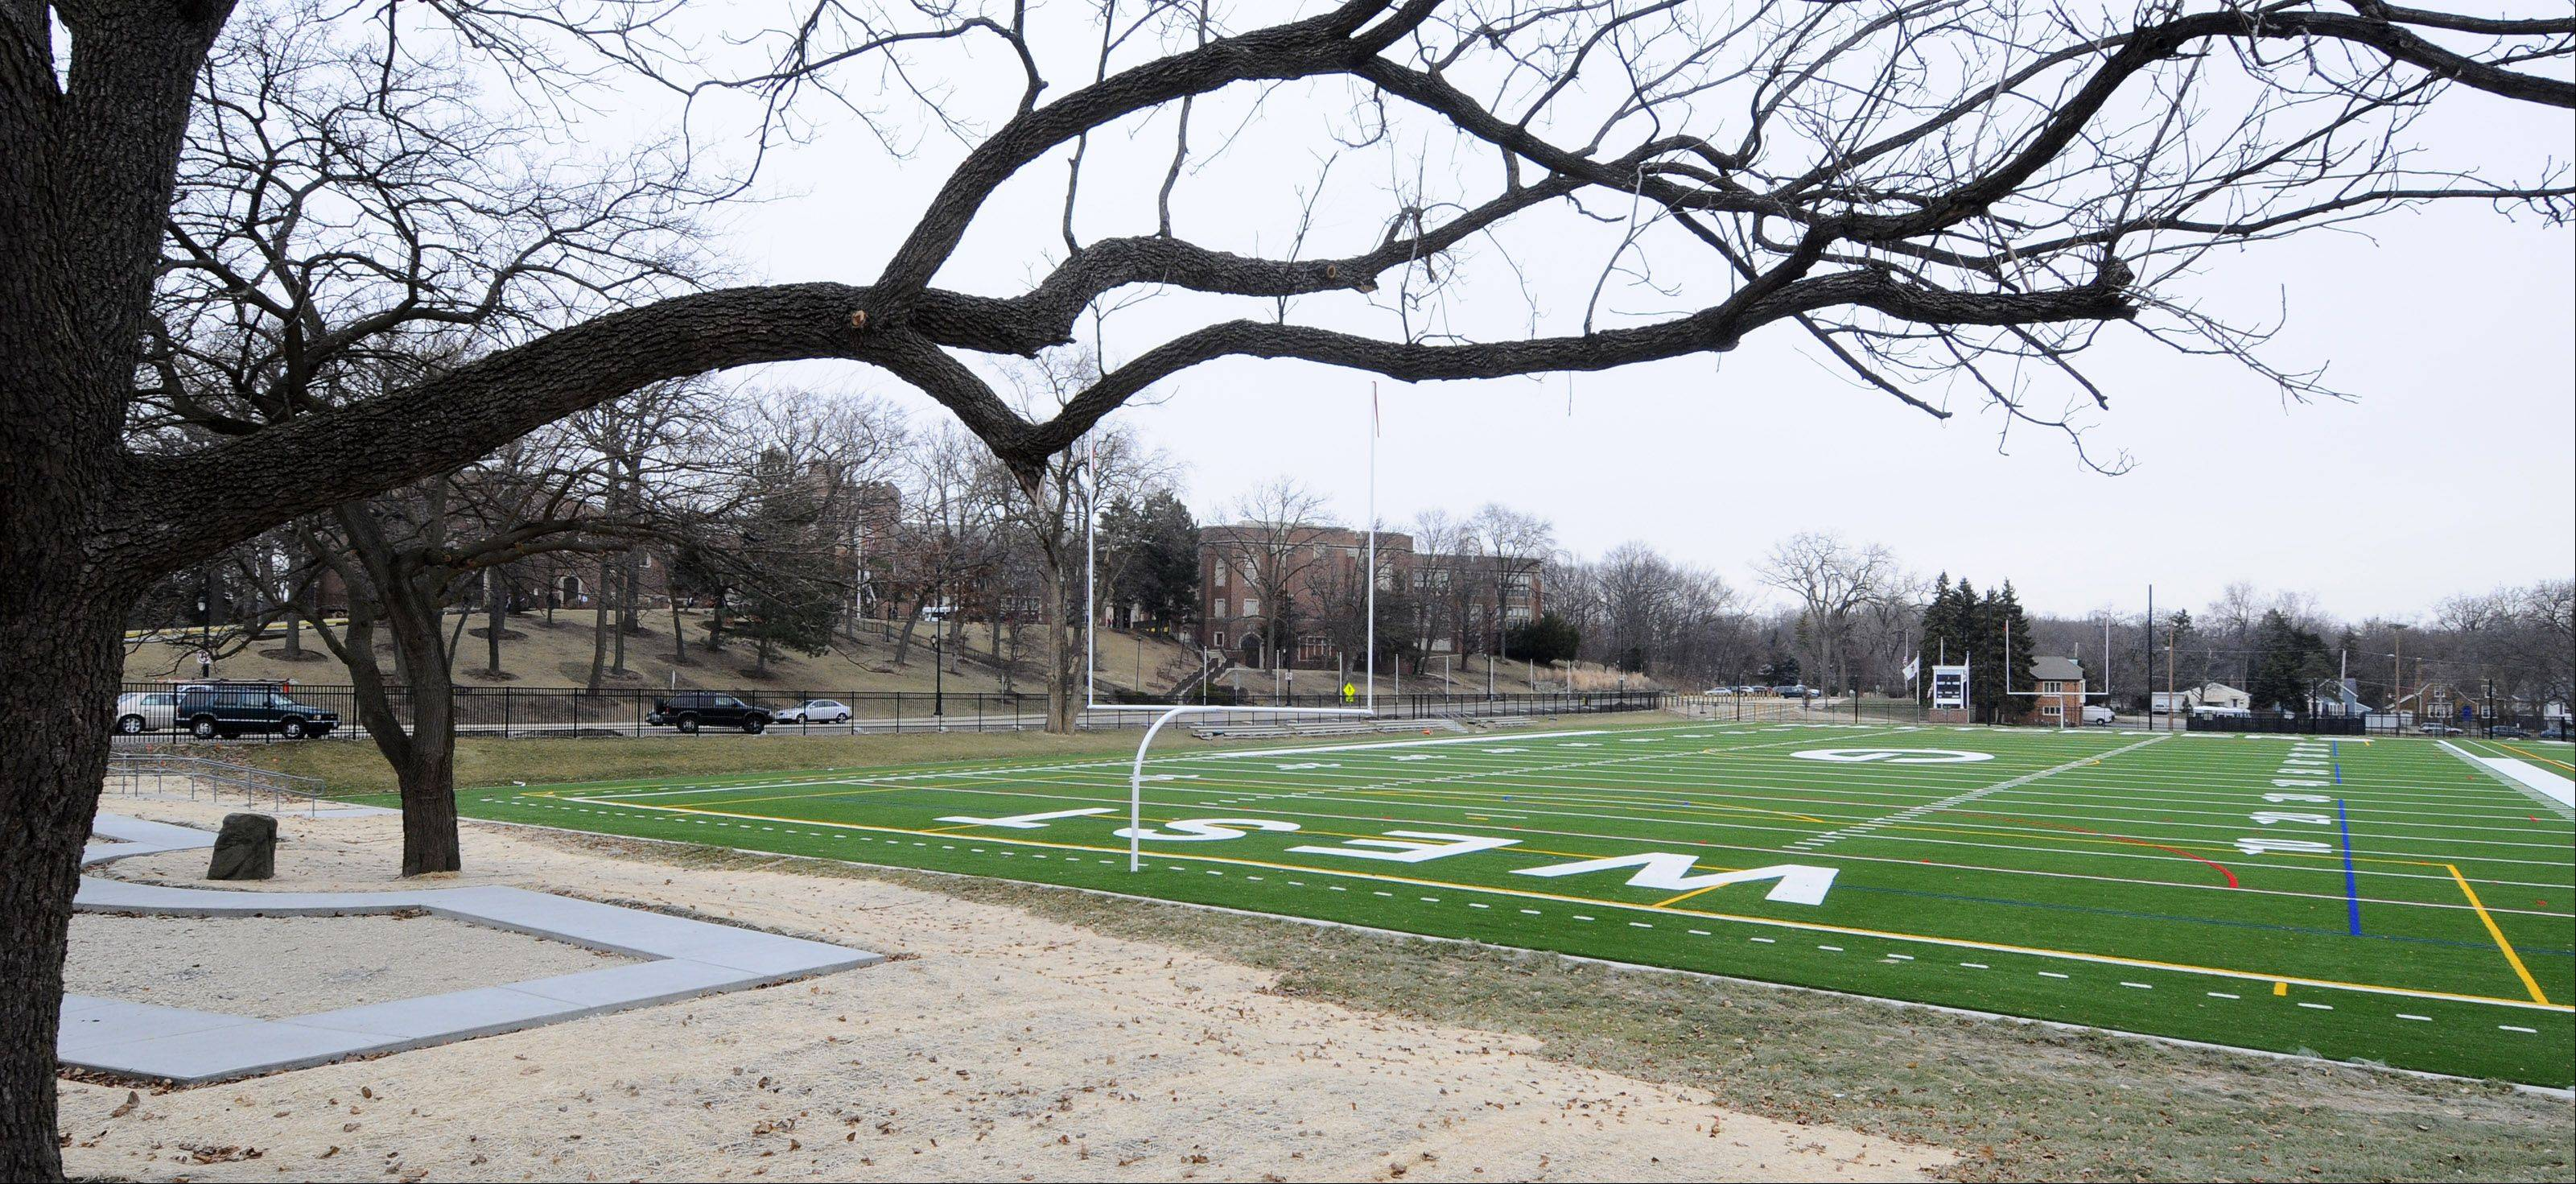 Glen Ellyn voters say 'yes' to field lights